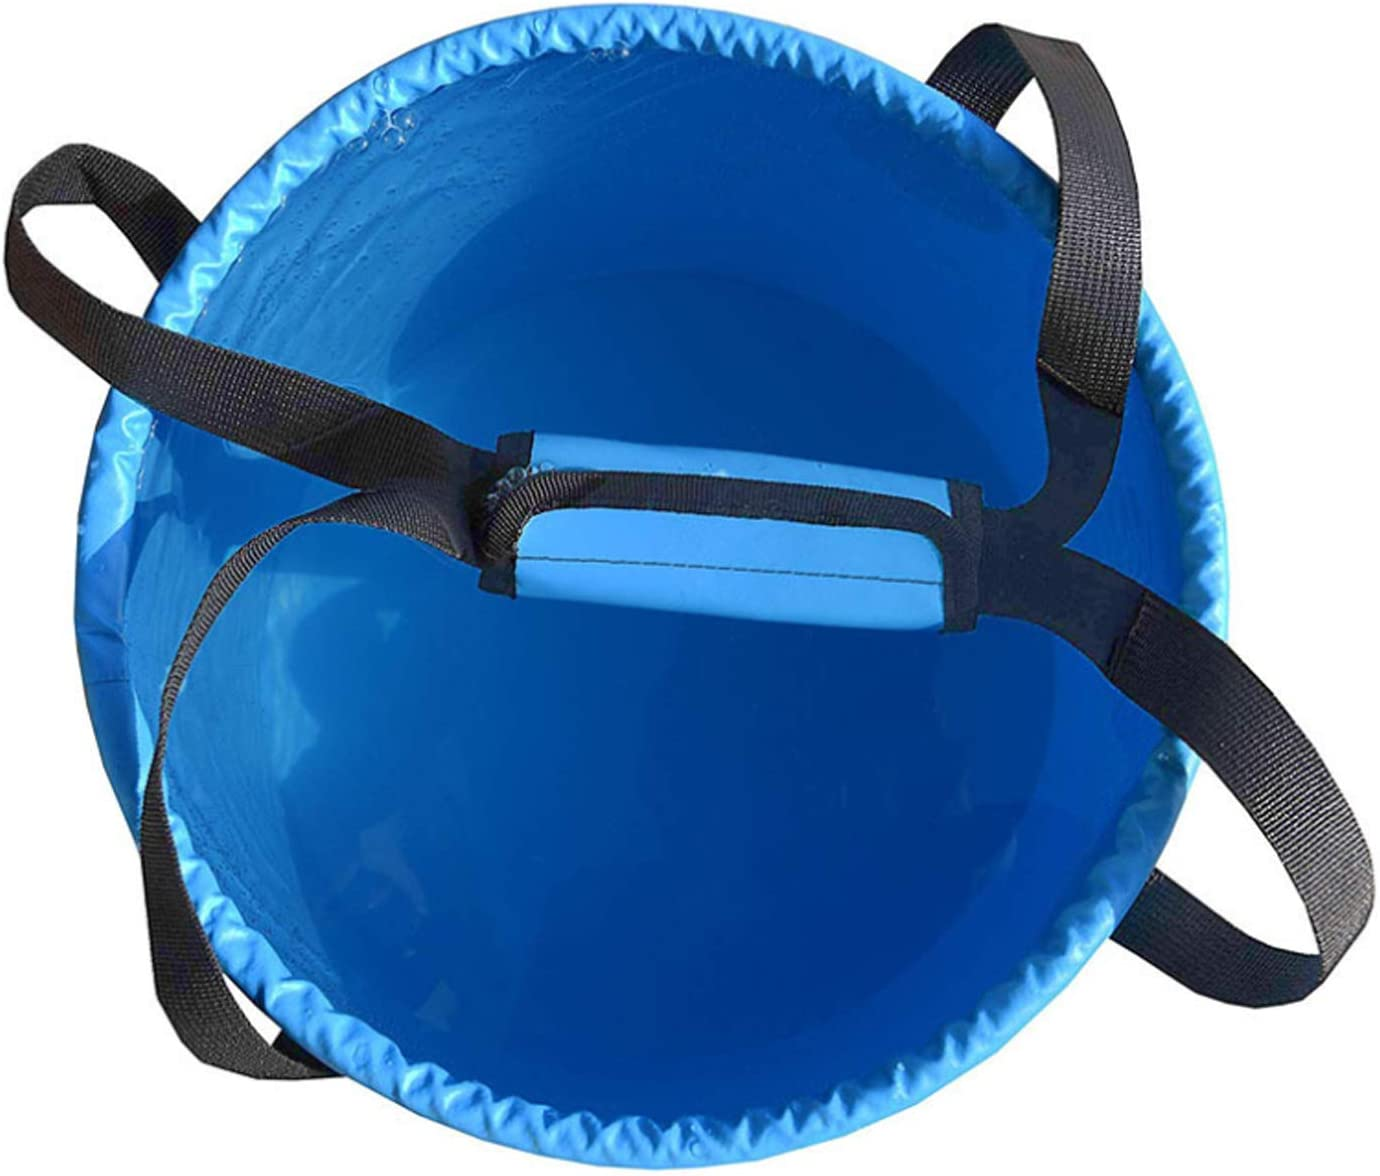 Boating Traveling Durable Portable Folding Water Container with Lid Fishing Fits for Camping YUMQUA Portable Collapsible Bucket and Gardening Car Washing